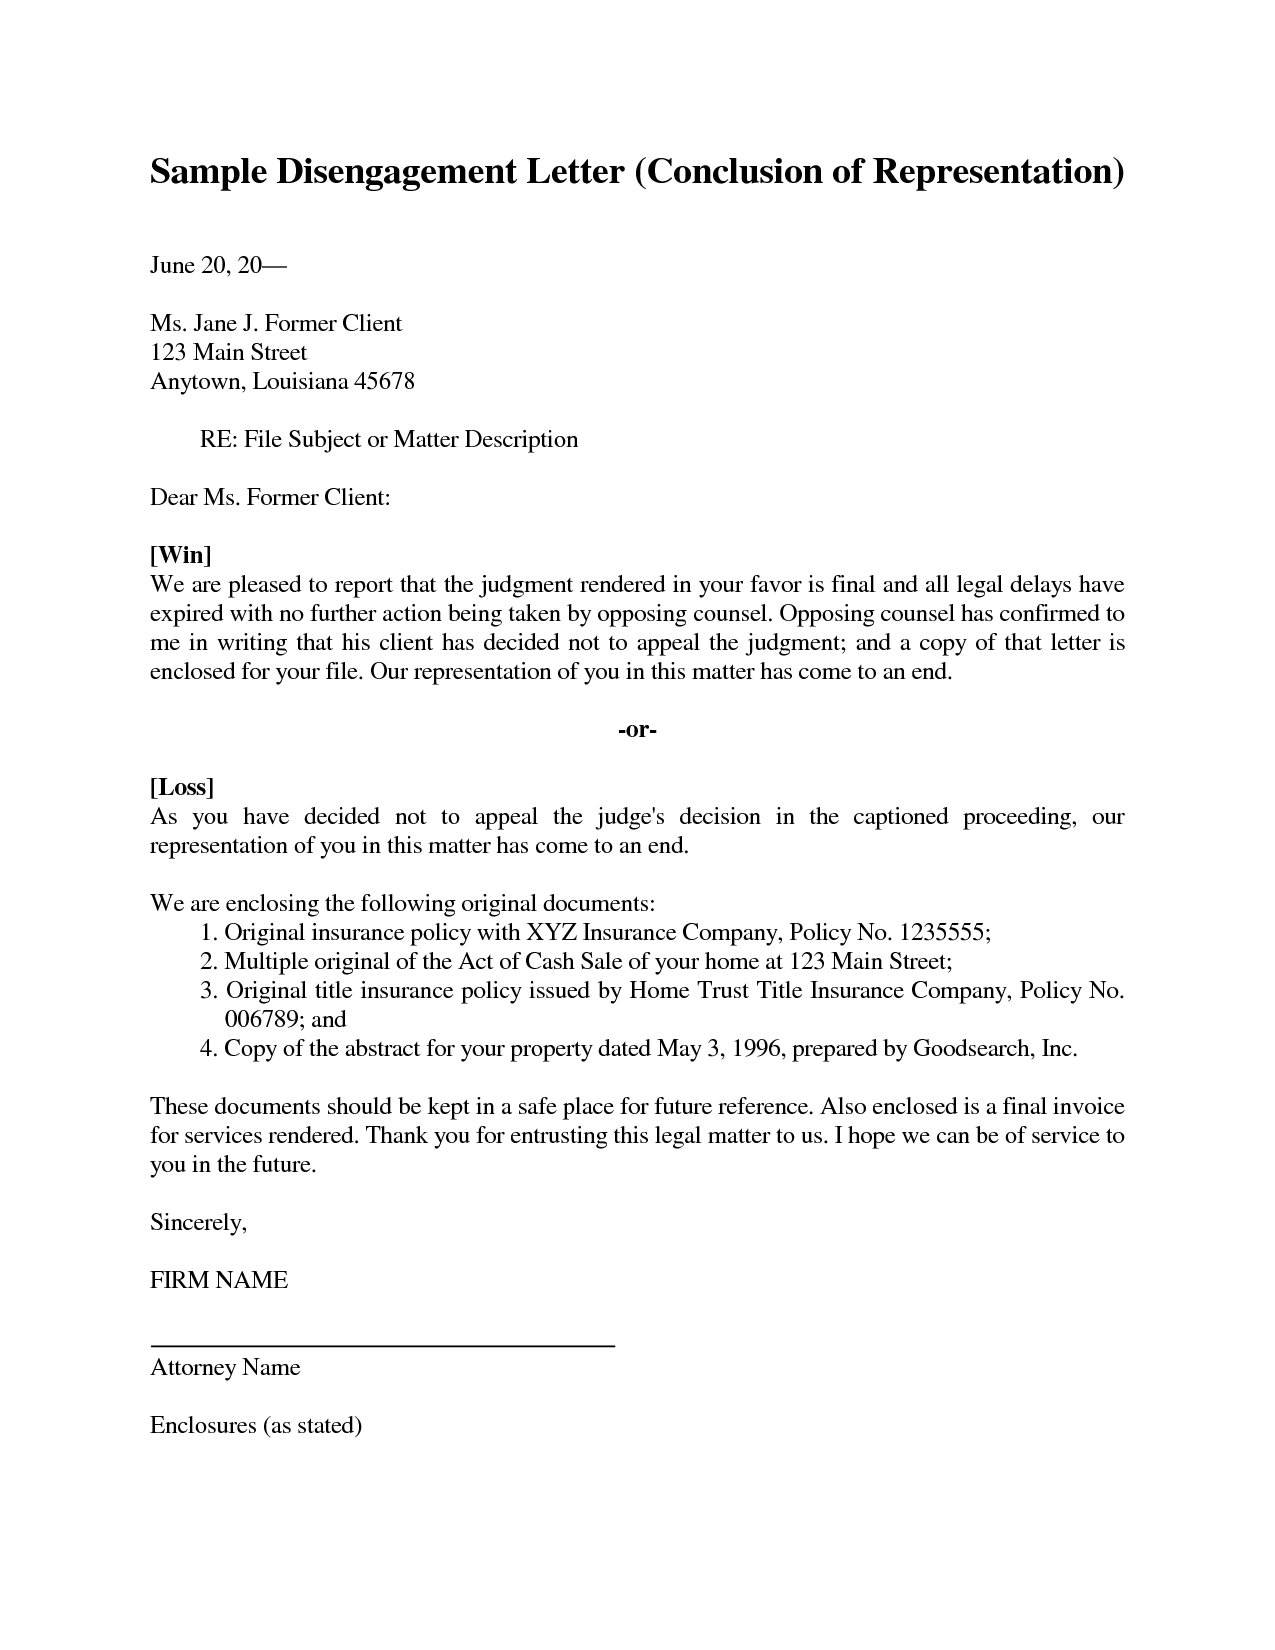 letter authorizing legal representation sample representation letter by mlp18219 sample 7416